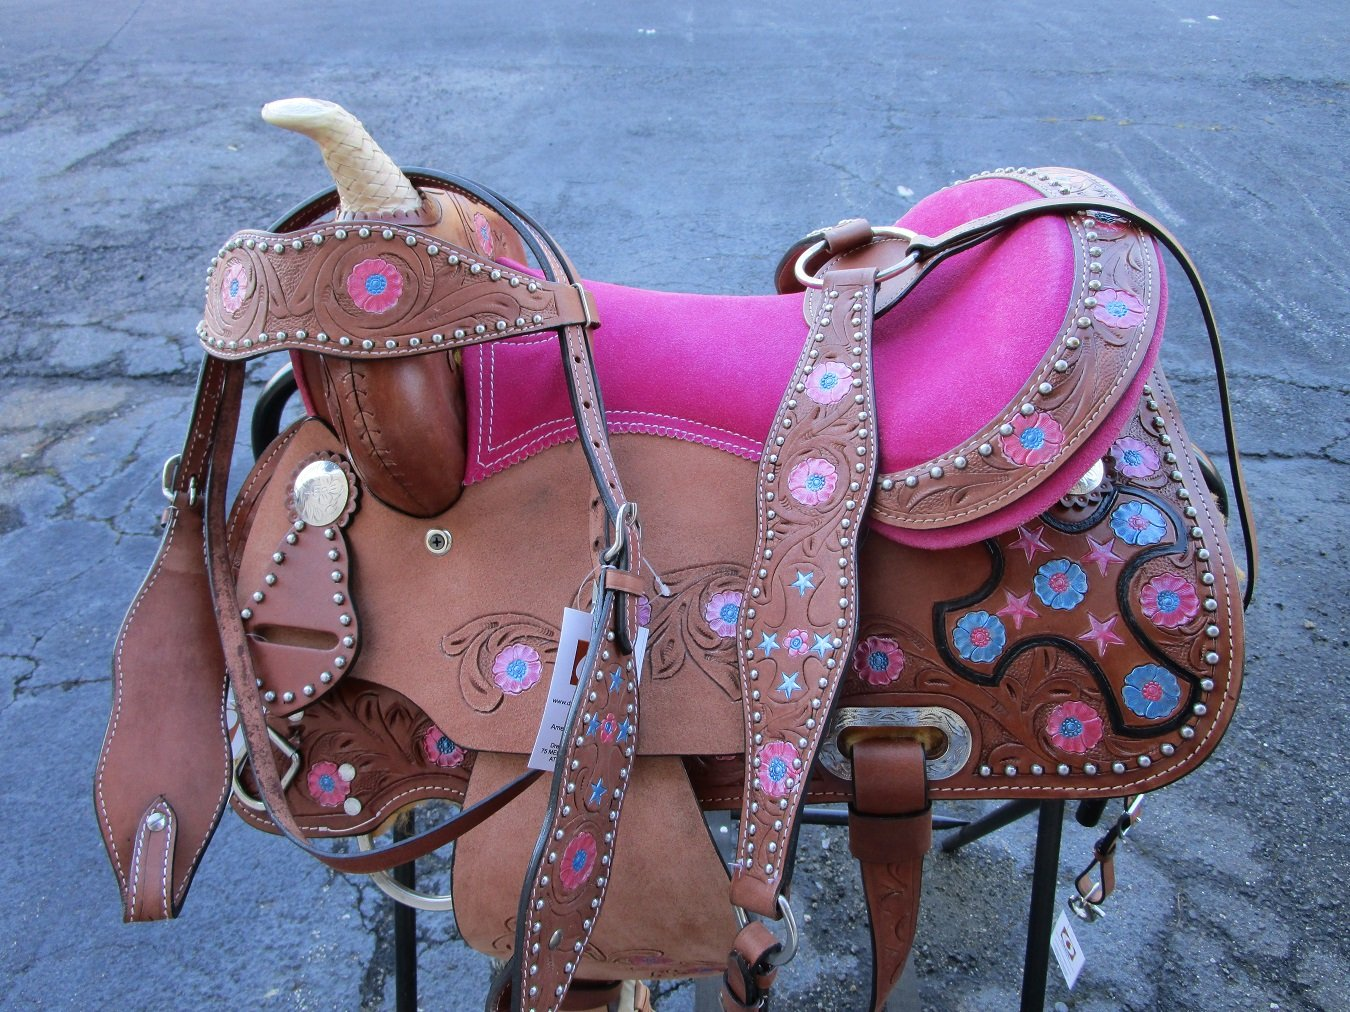 12 13 YOUTH COWBOY SADDLE WESTERN YOUTH CHILD PONY BARREL RACING SHOW TACK SET